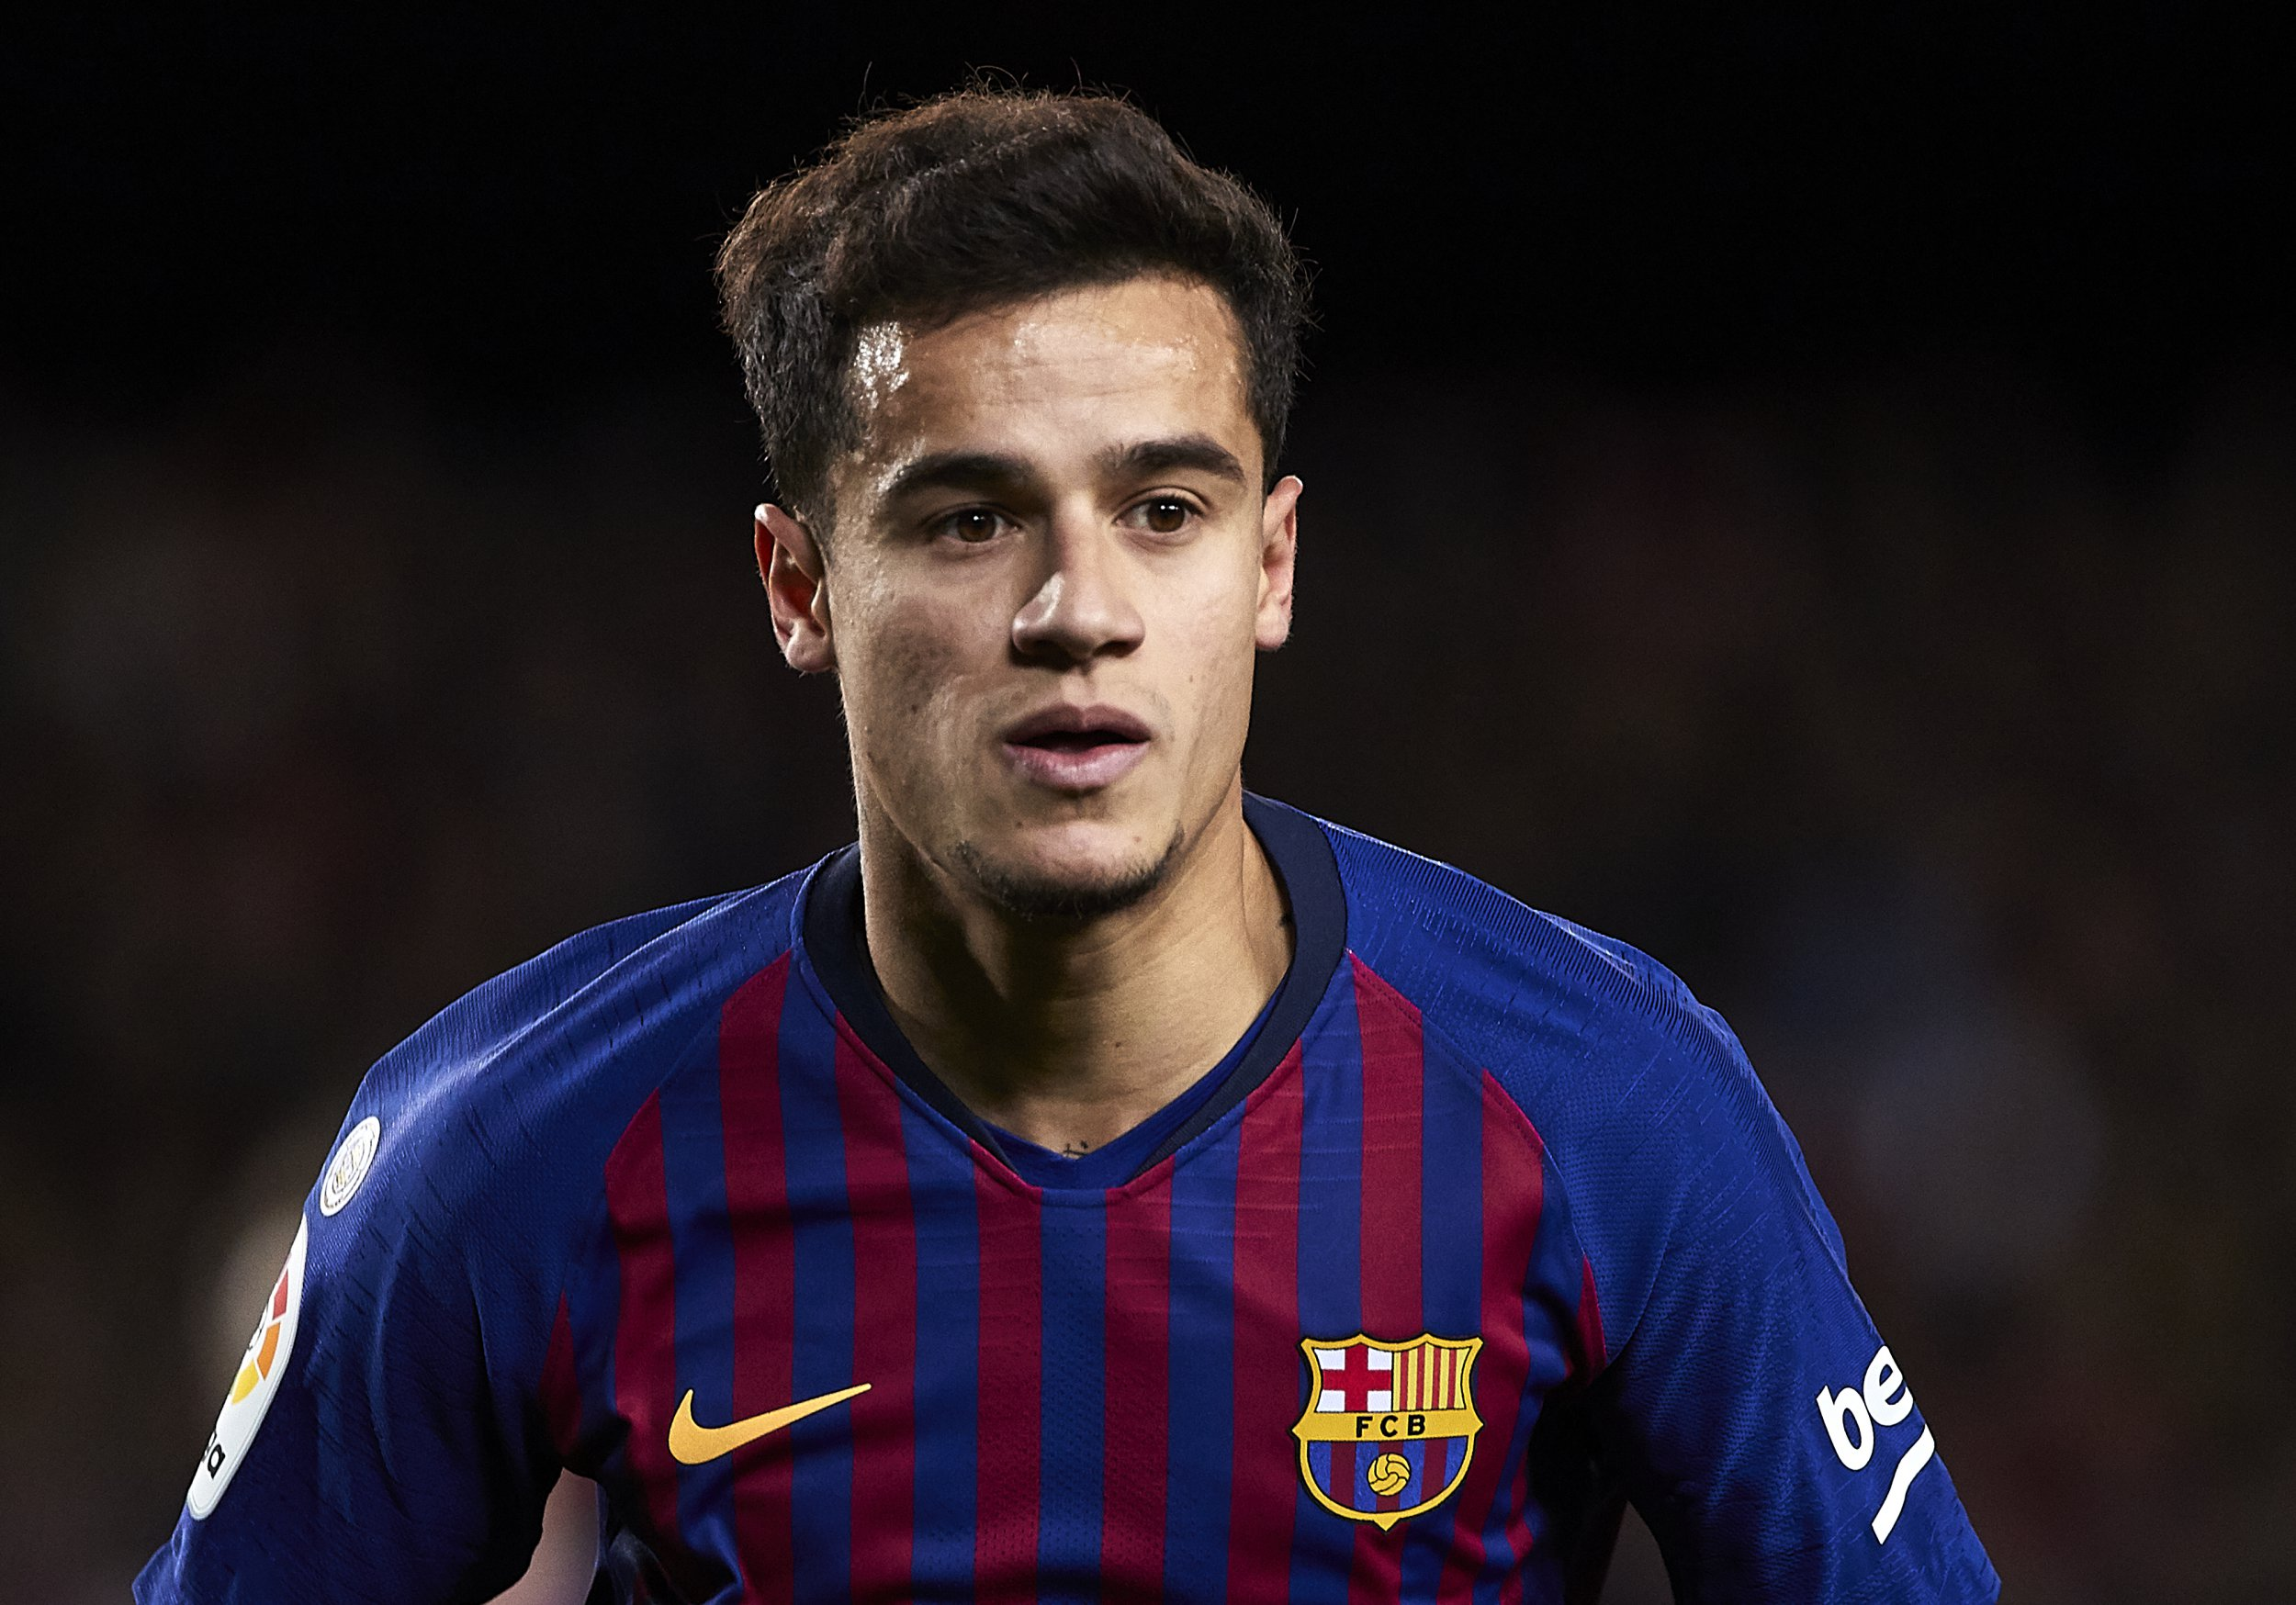 Chelsea target Philippe Coutinho as replacement for Eden Hazard